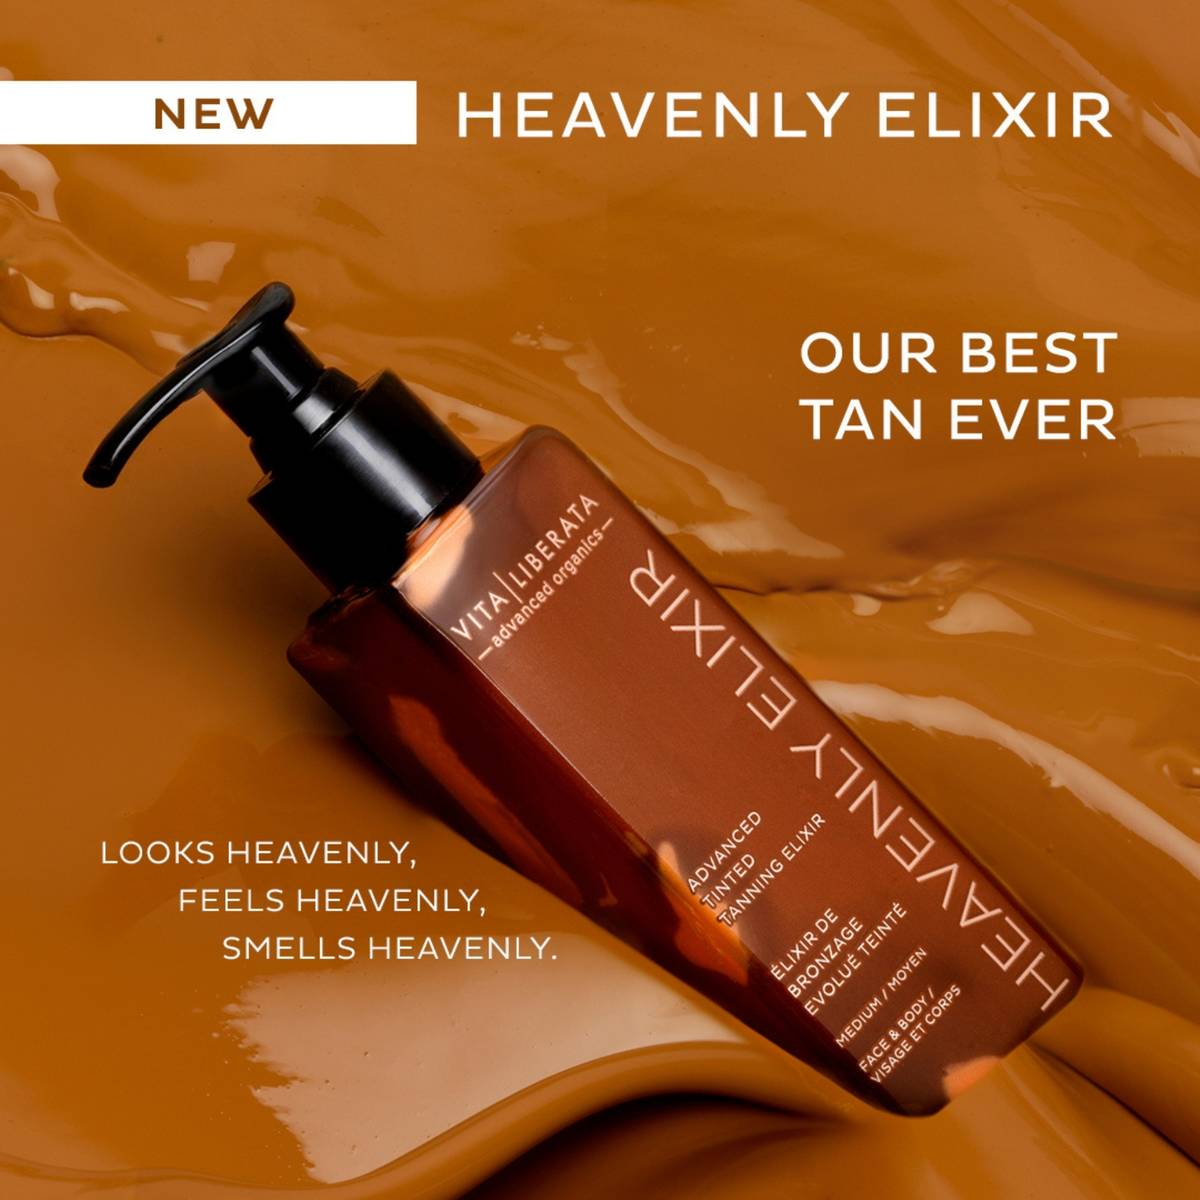 Vita Liberata's ingredients are the purest in the tanning world; natural, certified organic and Ecocert approved extracts are key to their formulas.